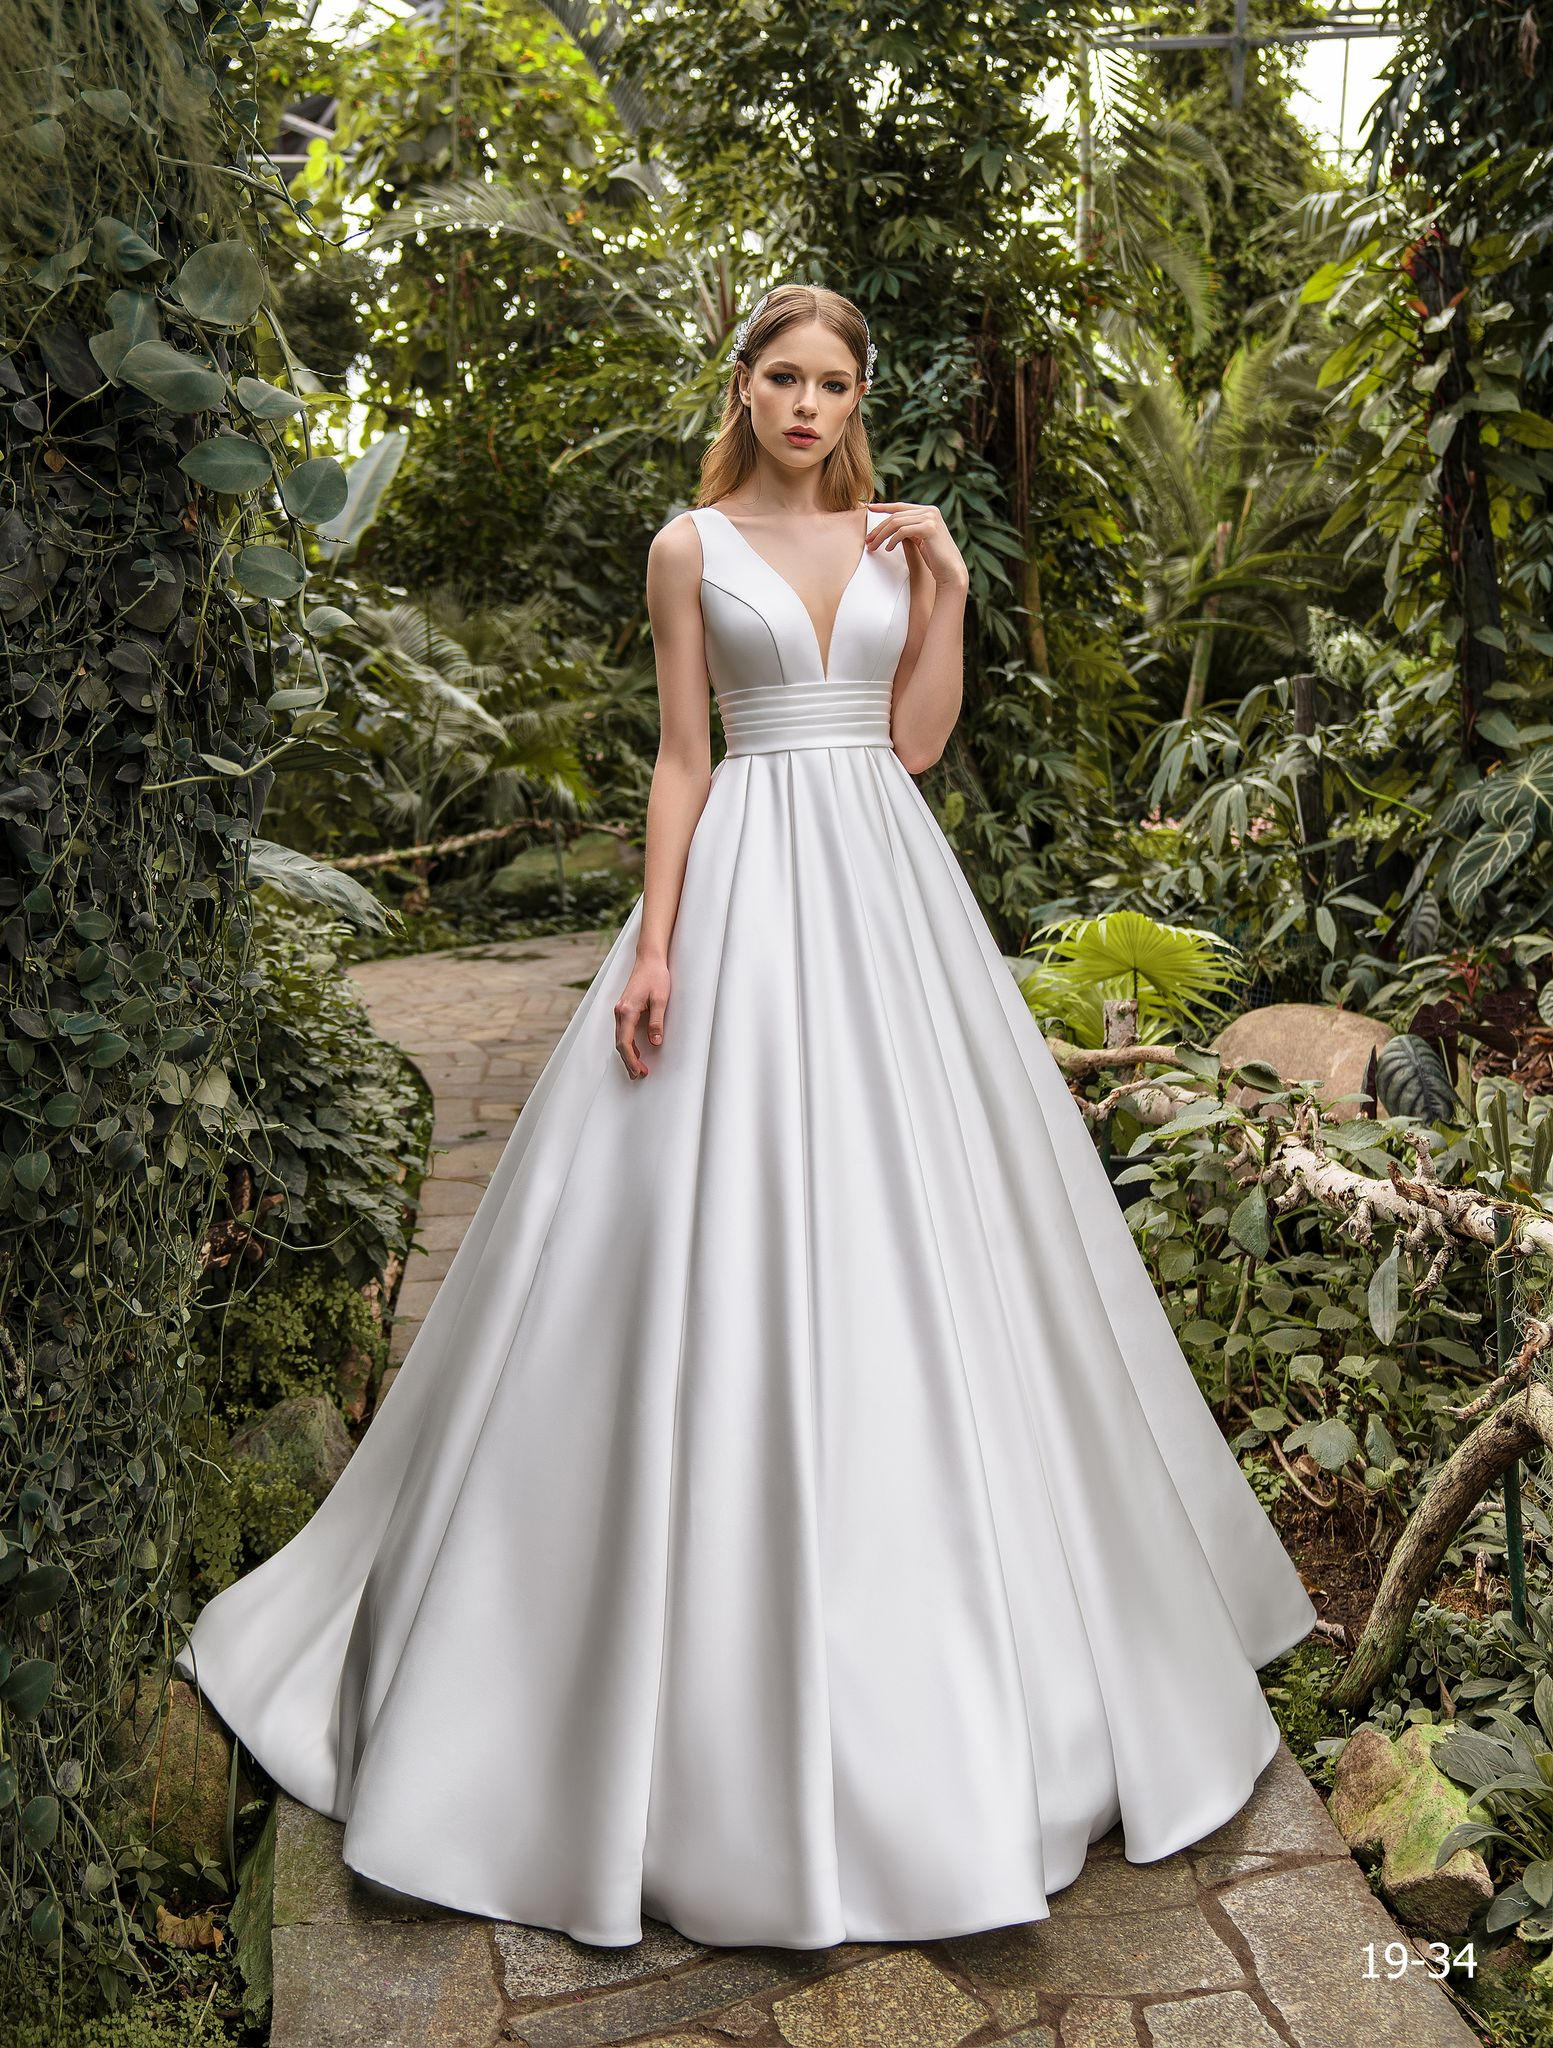 Brianna Wedding Dress